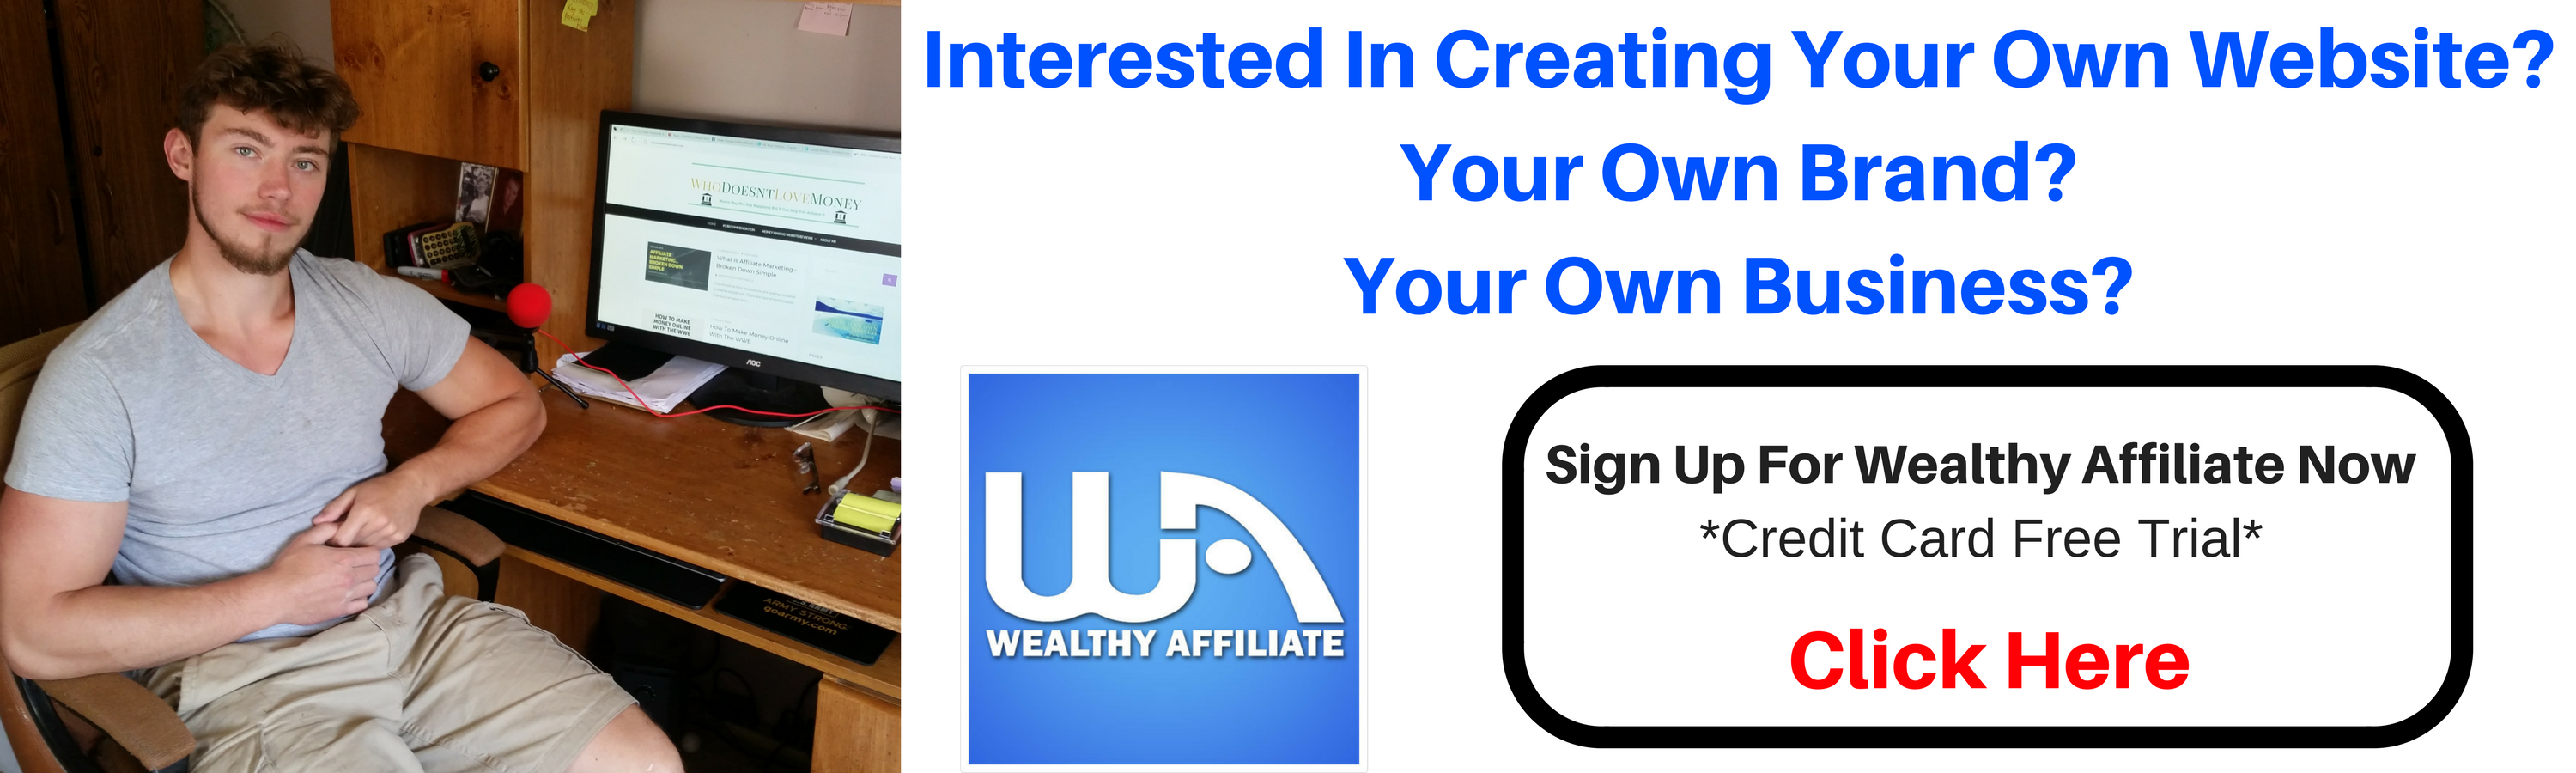 Interested In Creating Your Own Website